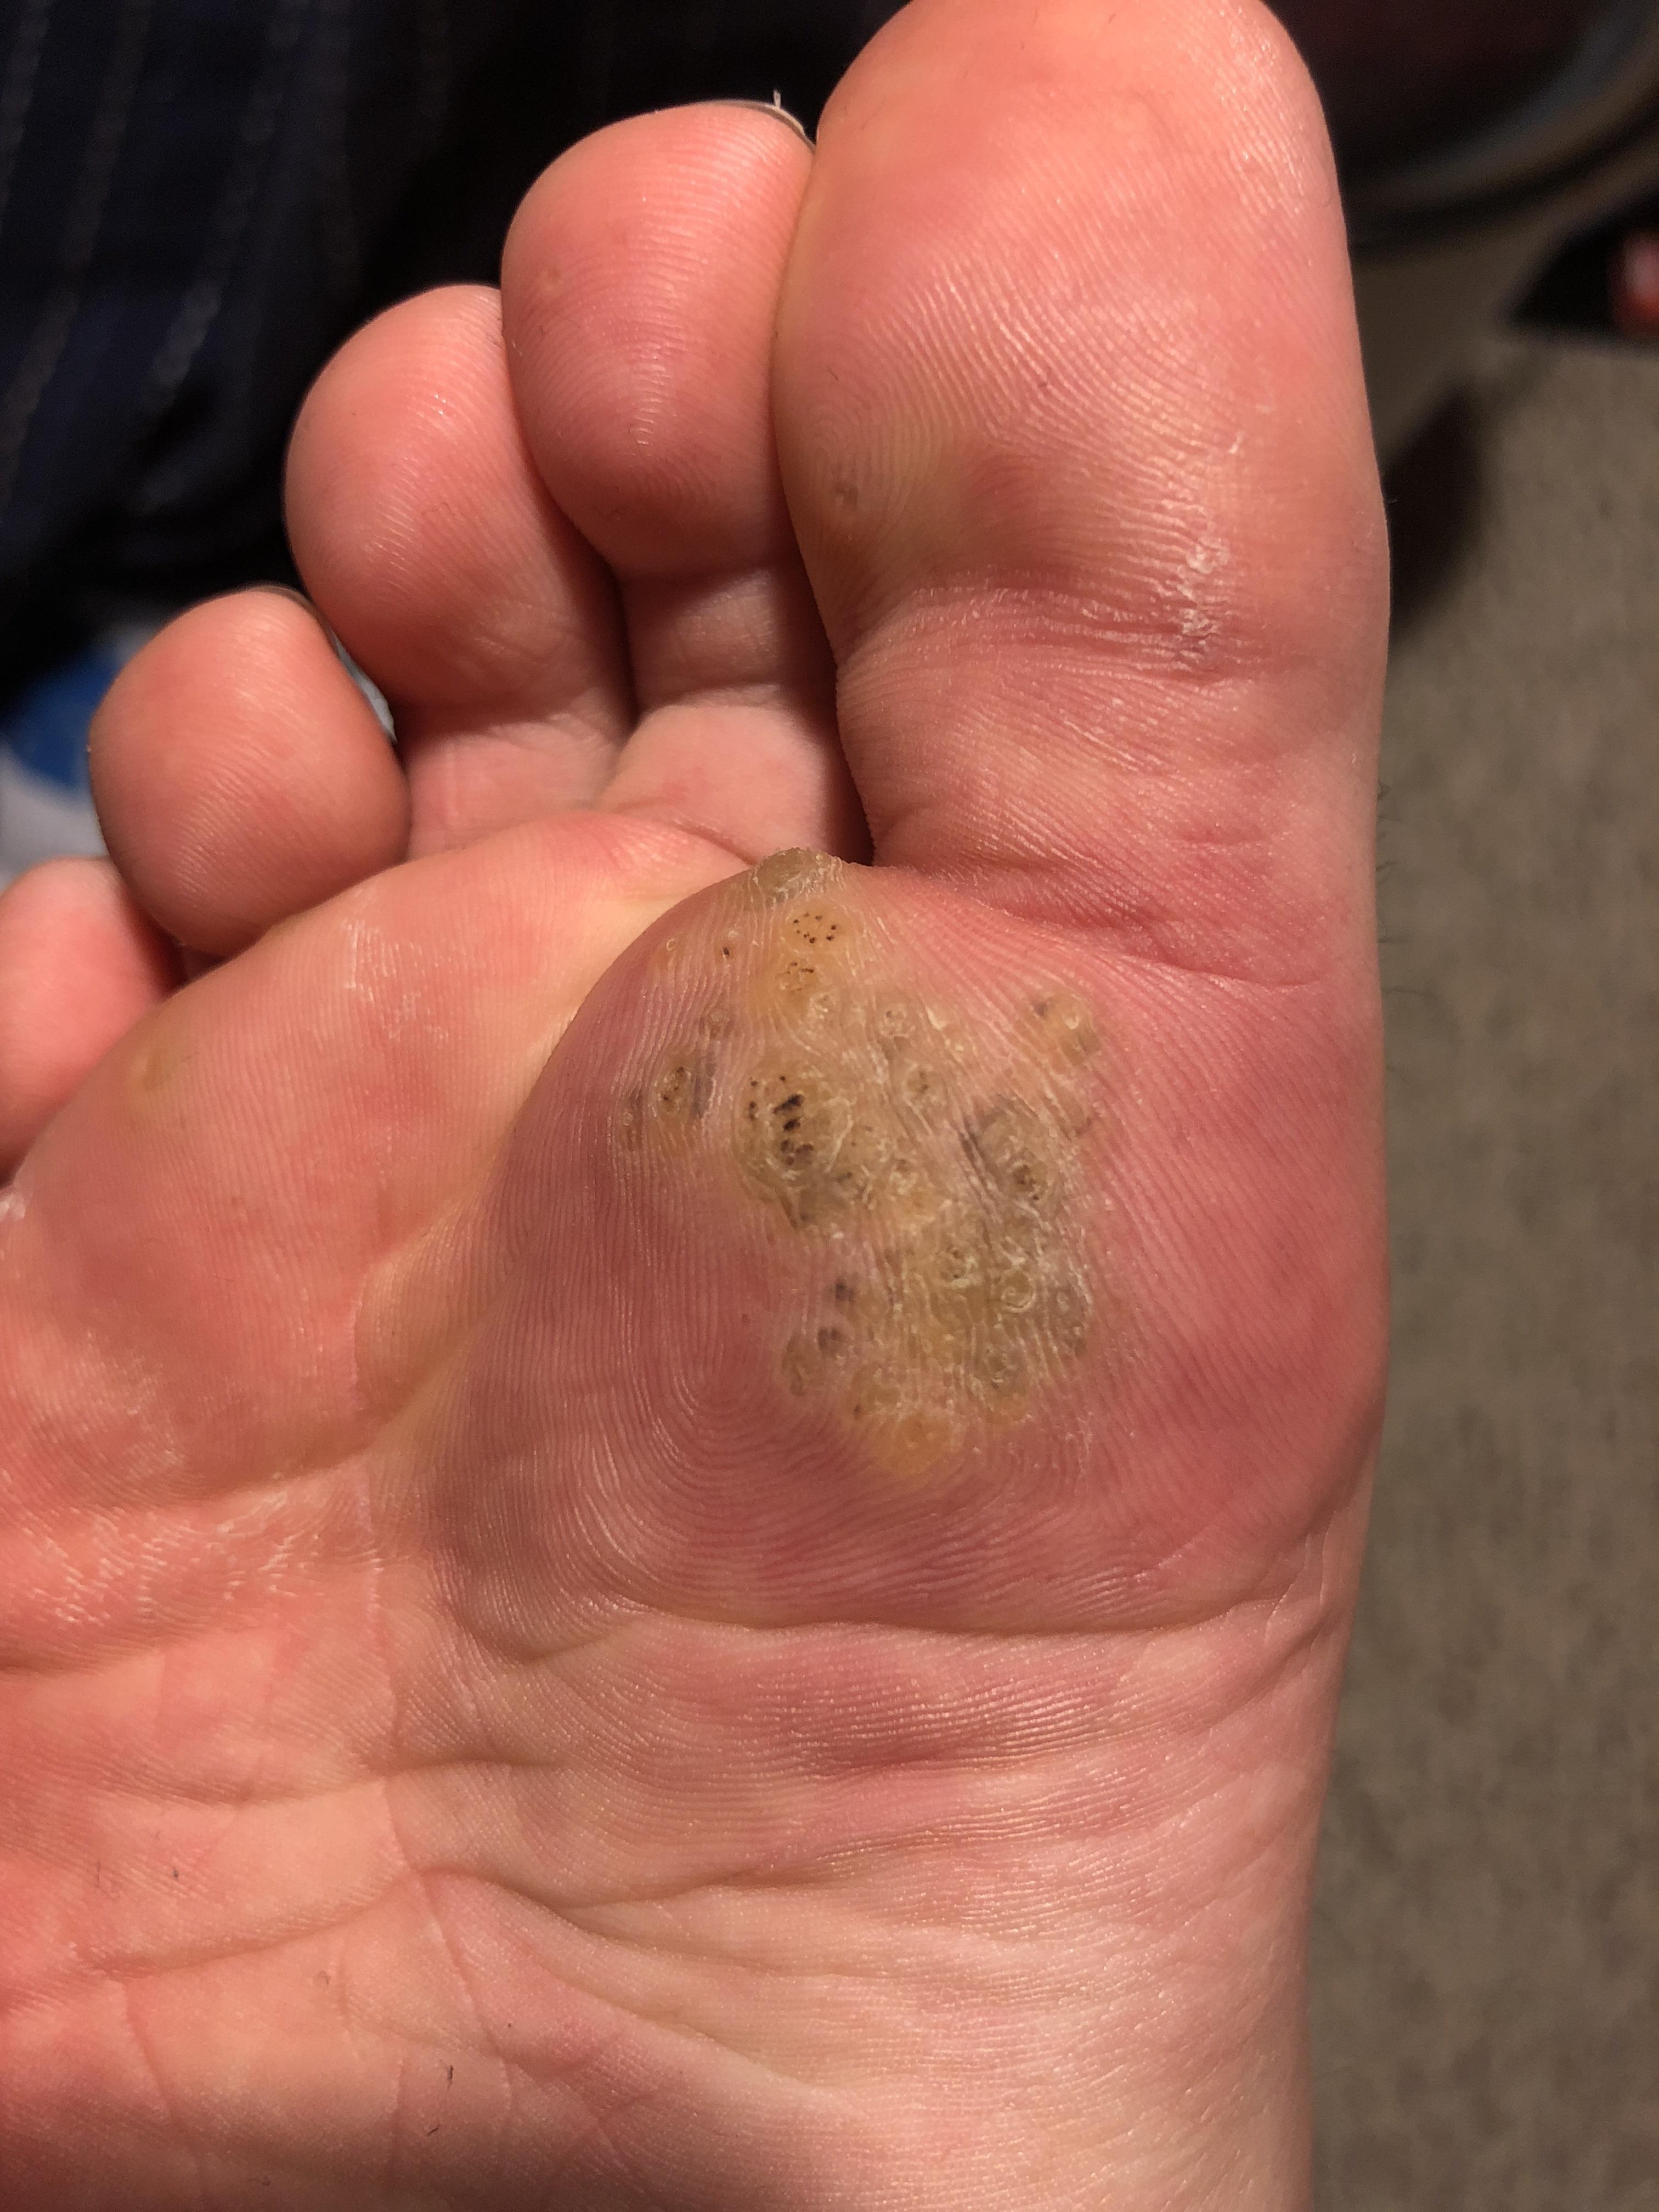 wart on foot black dots